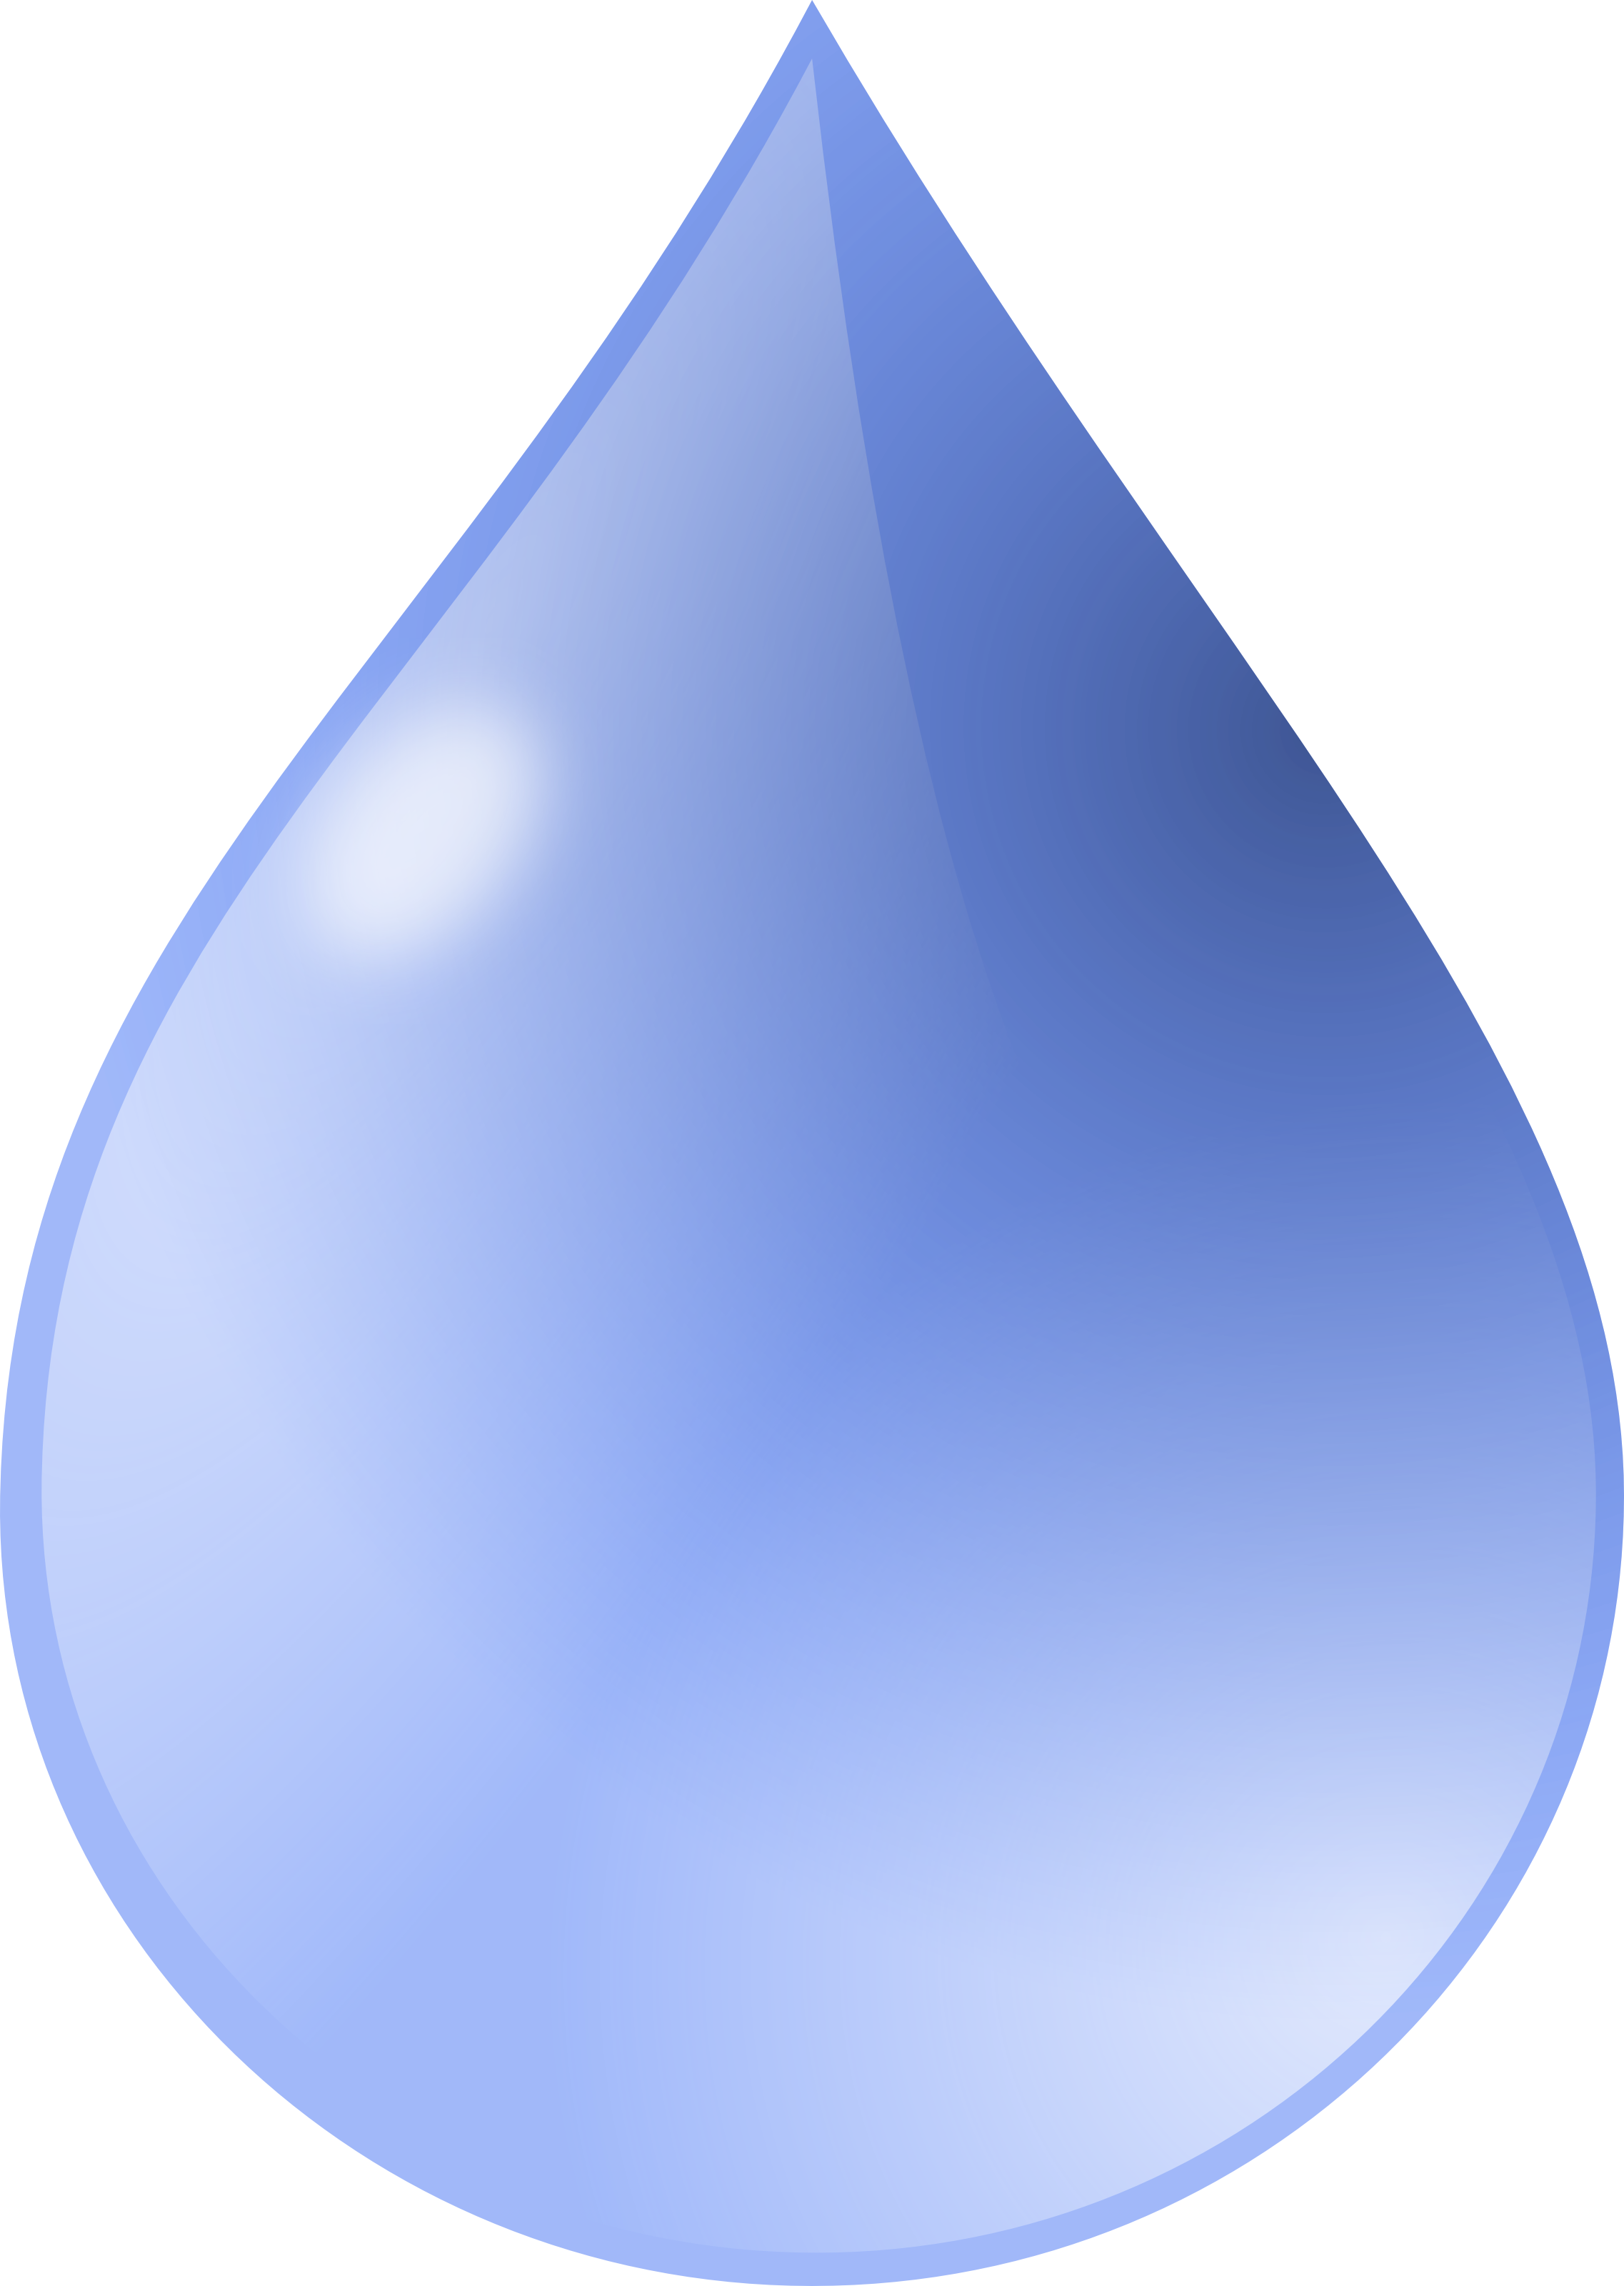 Water drop png. Clipart photos transparentpng download